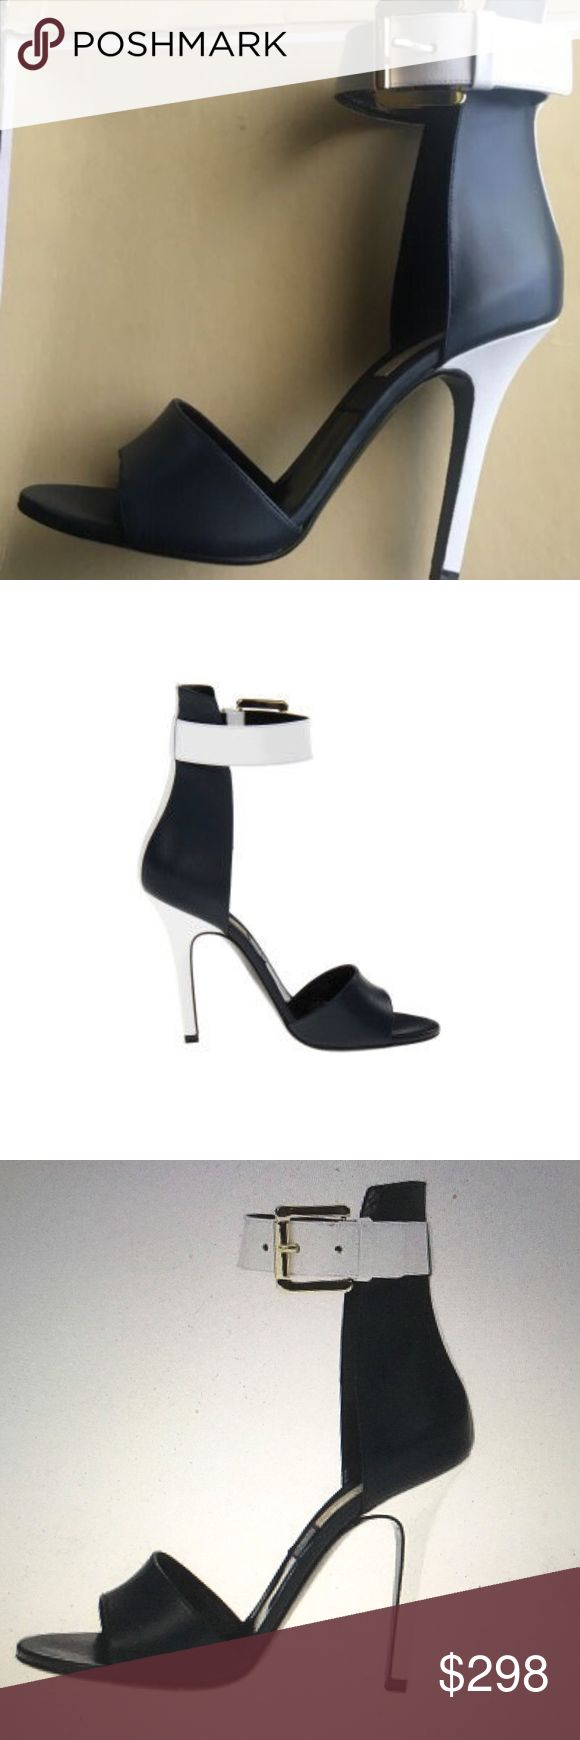 Michael Kors MK20181 Two Tone Heels Two-tone leather upper Ankle strap with a buckle closure Striped back Set-under stiletto heel Leather lining Leather insole Leather outsole Made in Italy. Heel Height: 3 3/4 in Box is damaged, no dustbag Michael Kors Shoes Heels